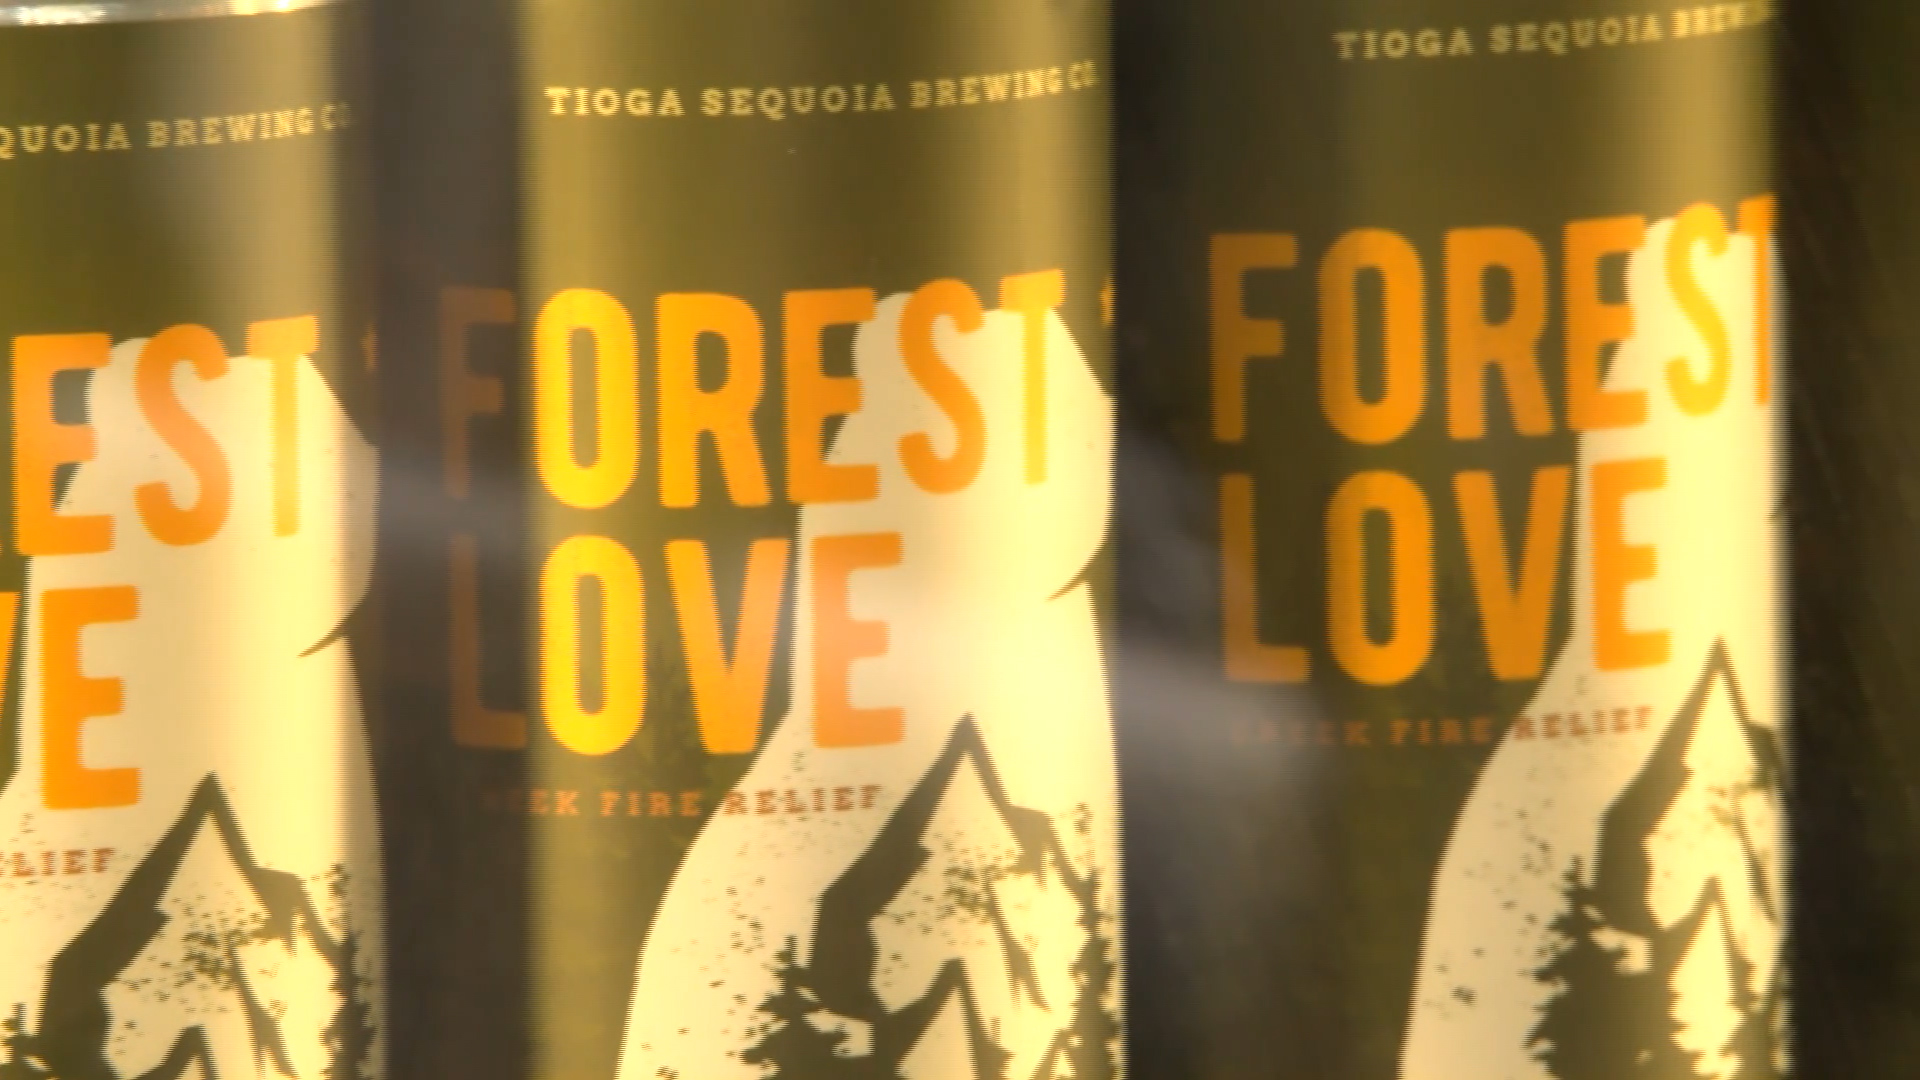 Local breweries band together to help Creek Fire recovery efforts